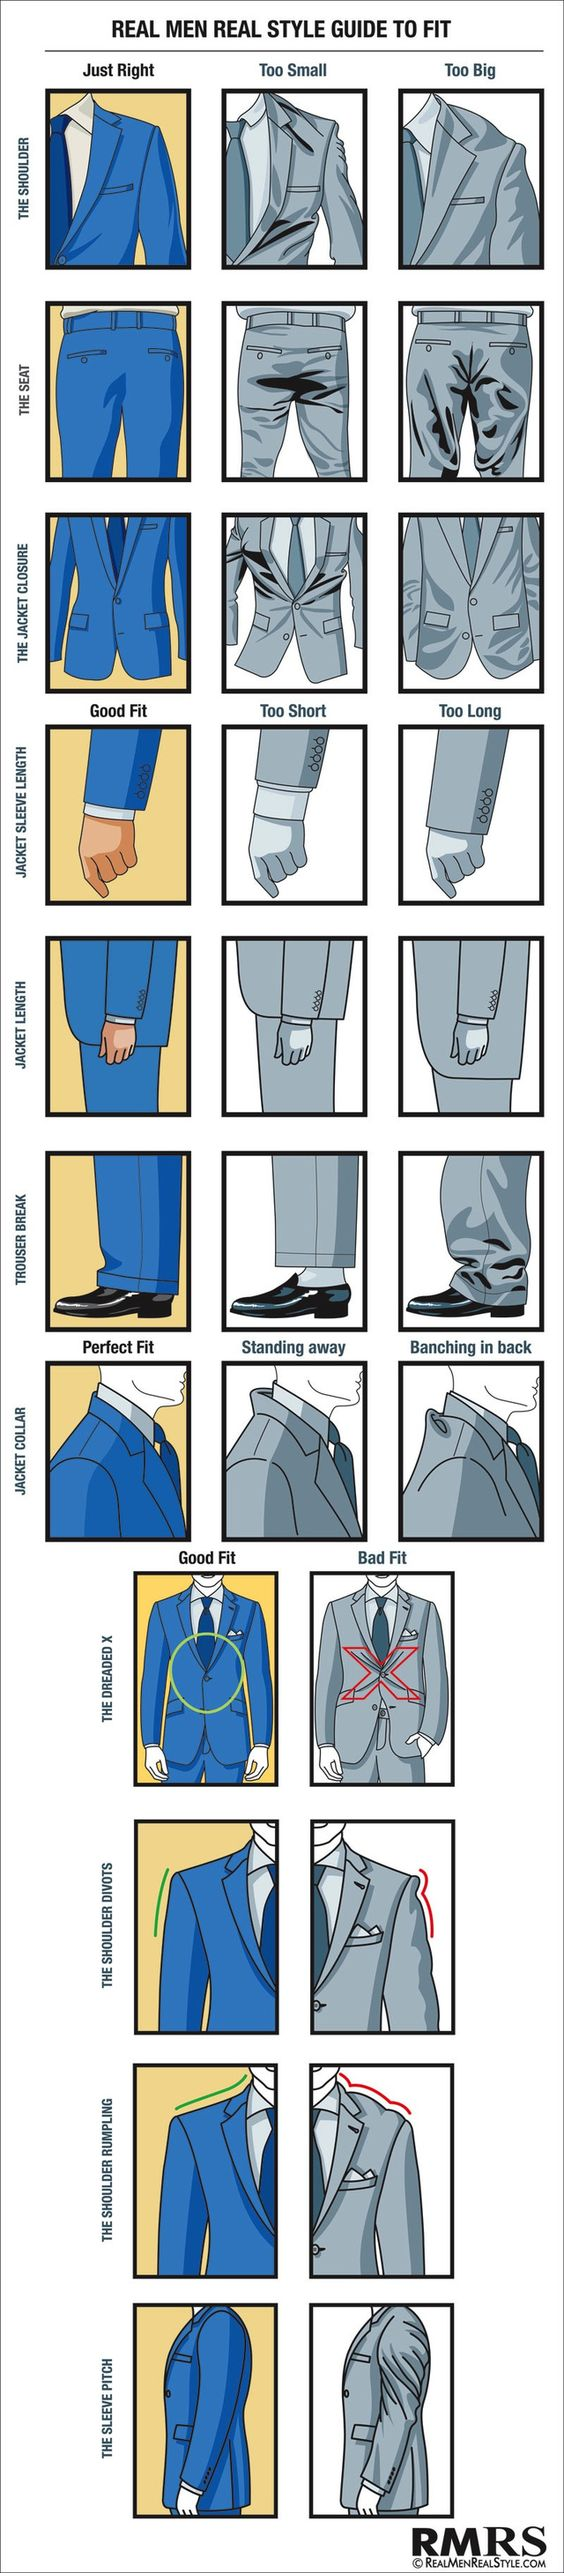 """""""This Visual Guide Outlines How Men's Suits Should Fit"""" I use this all the time when buying suits... (yeah, right...)"""